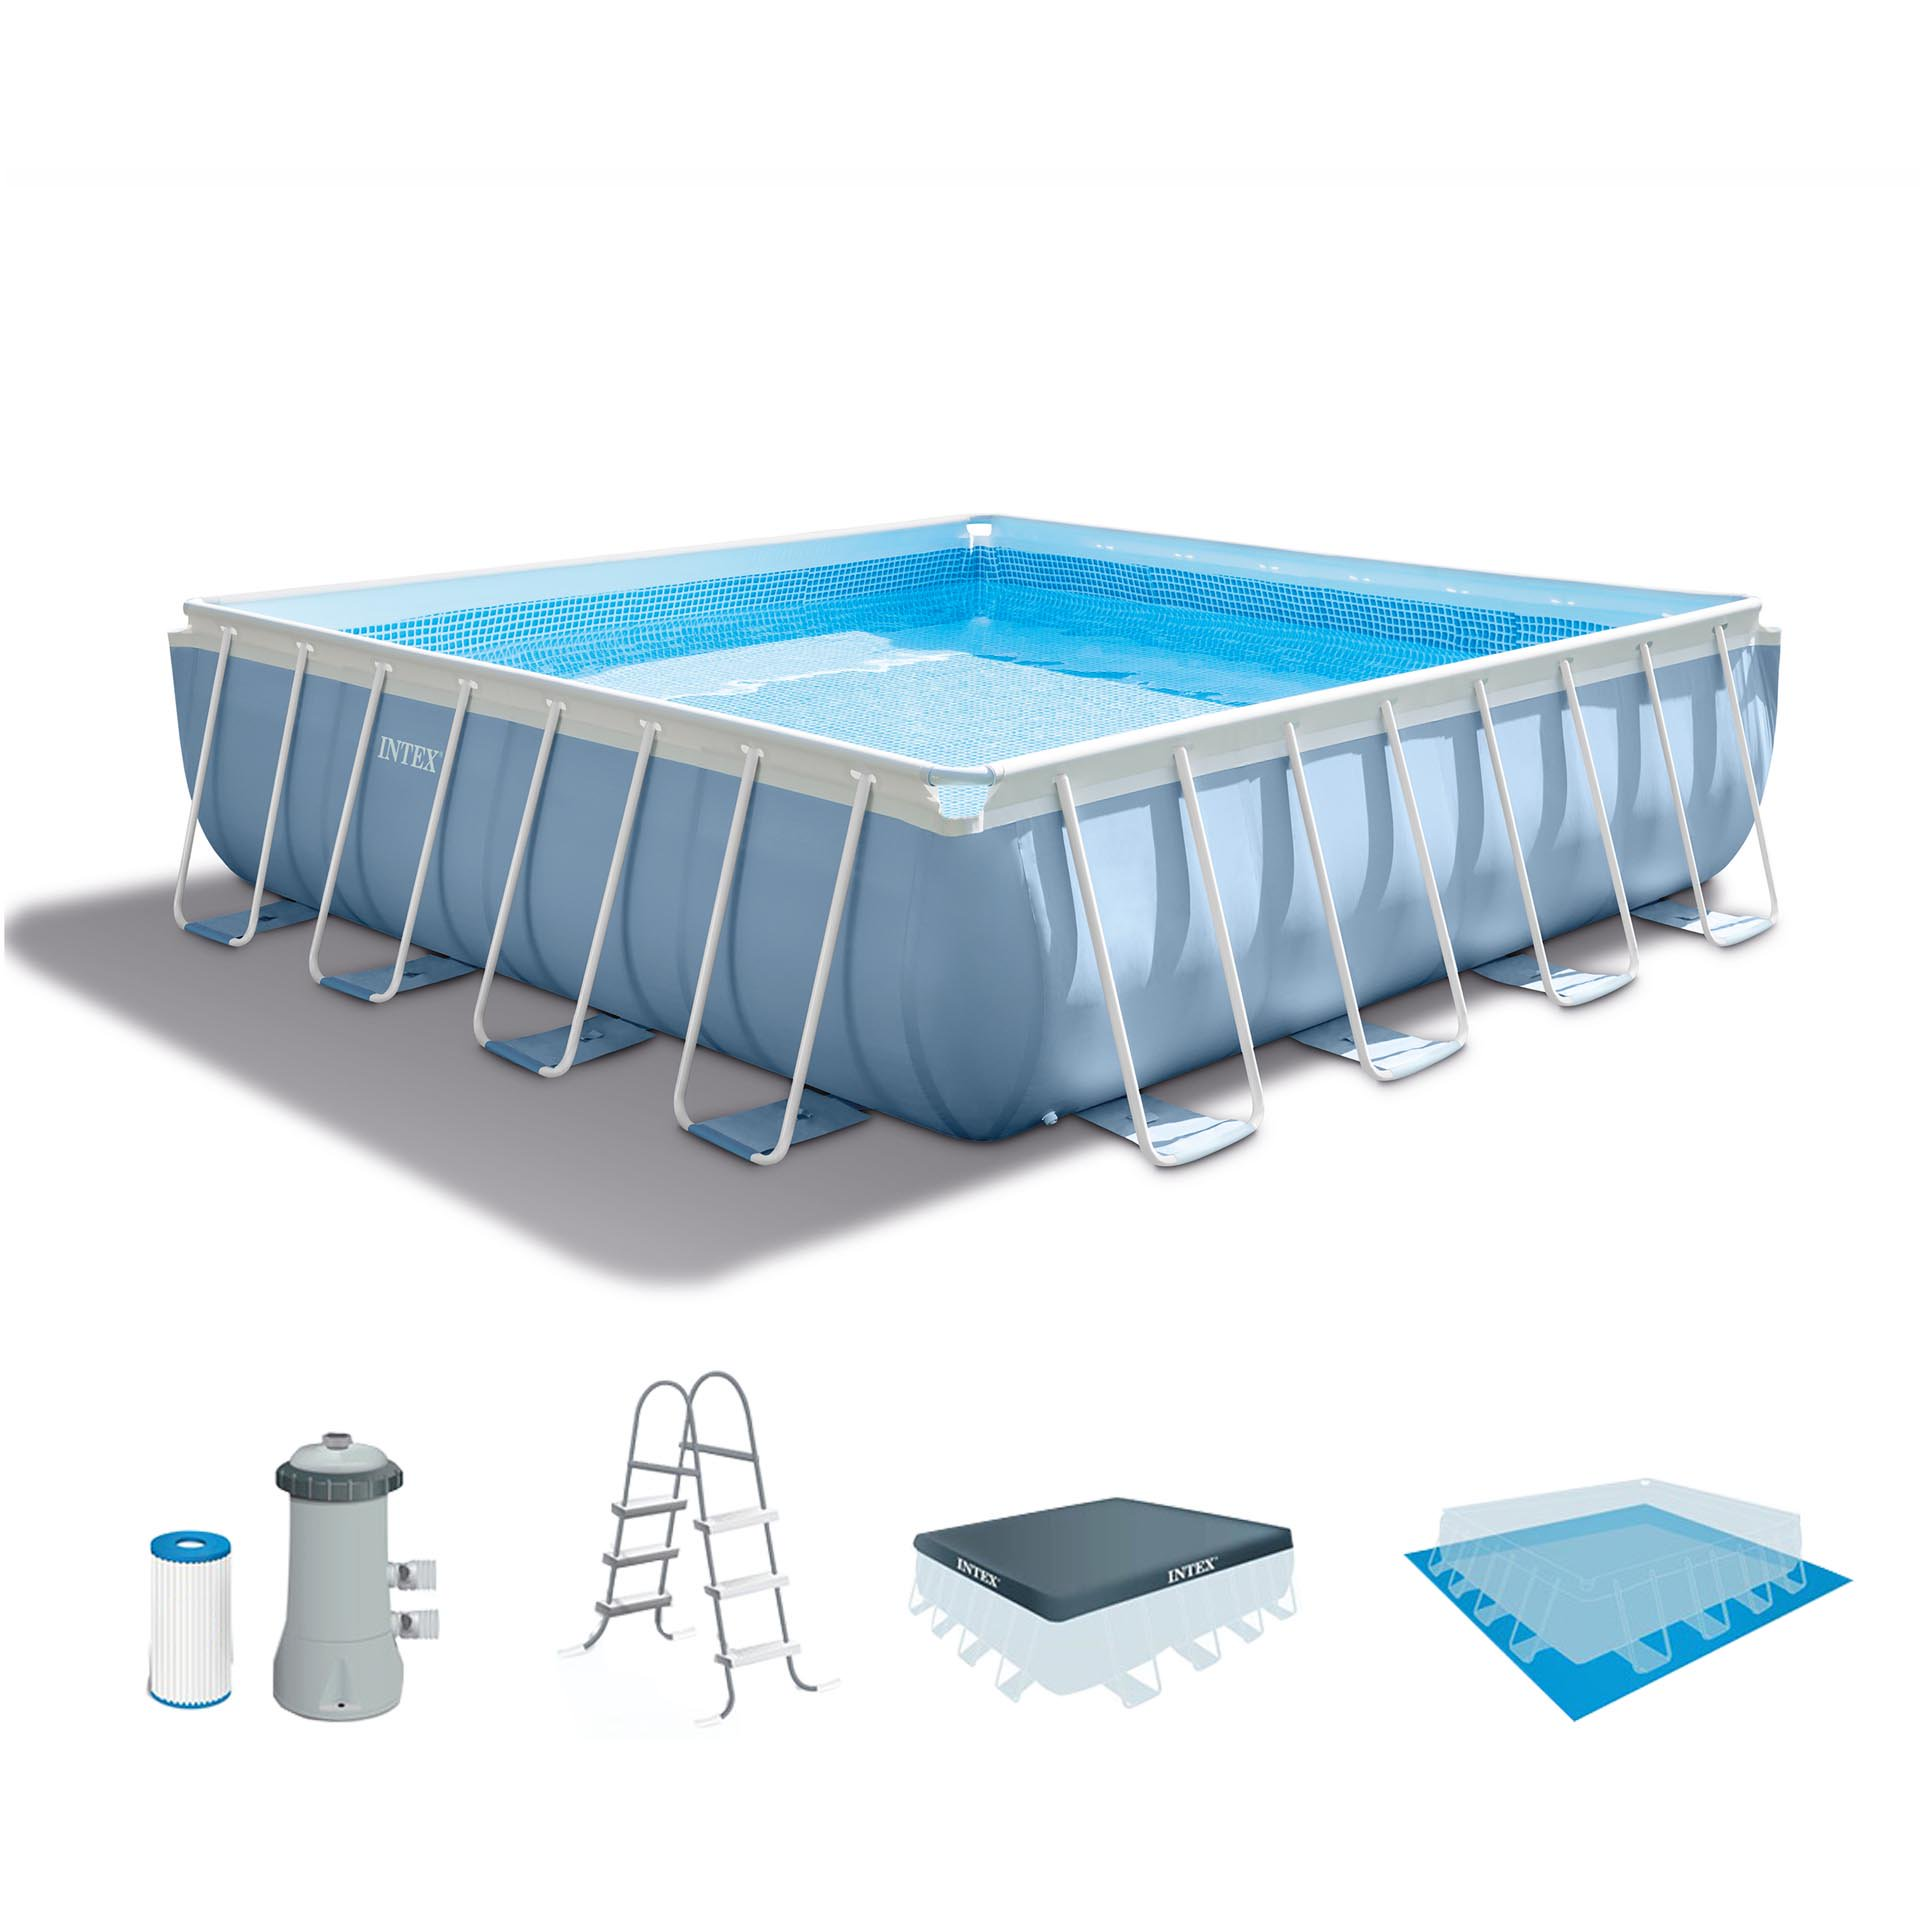 Intex 14' Above Ground Swimming Pool Set with Ladder, 1000 GPH Pump and Filter